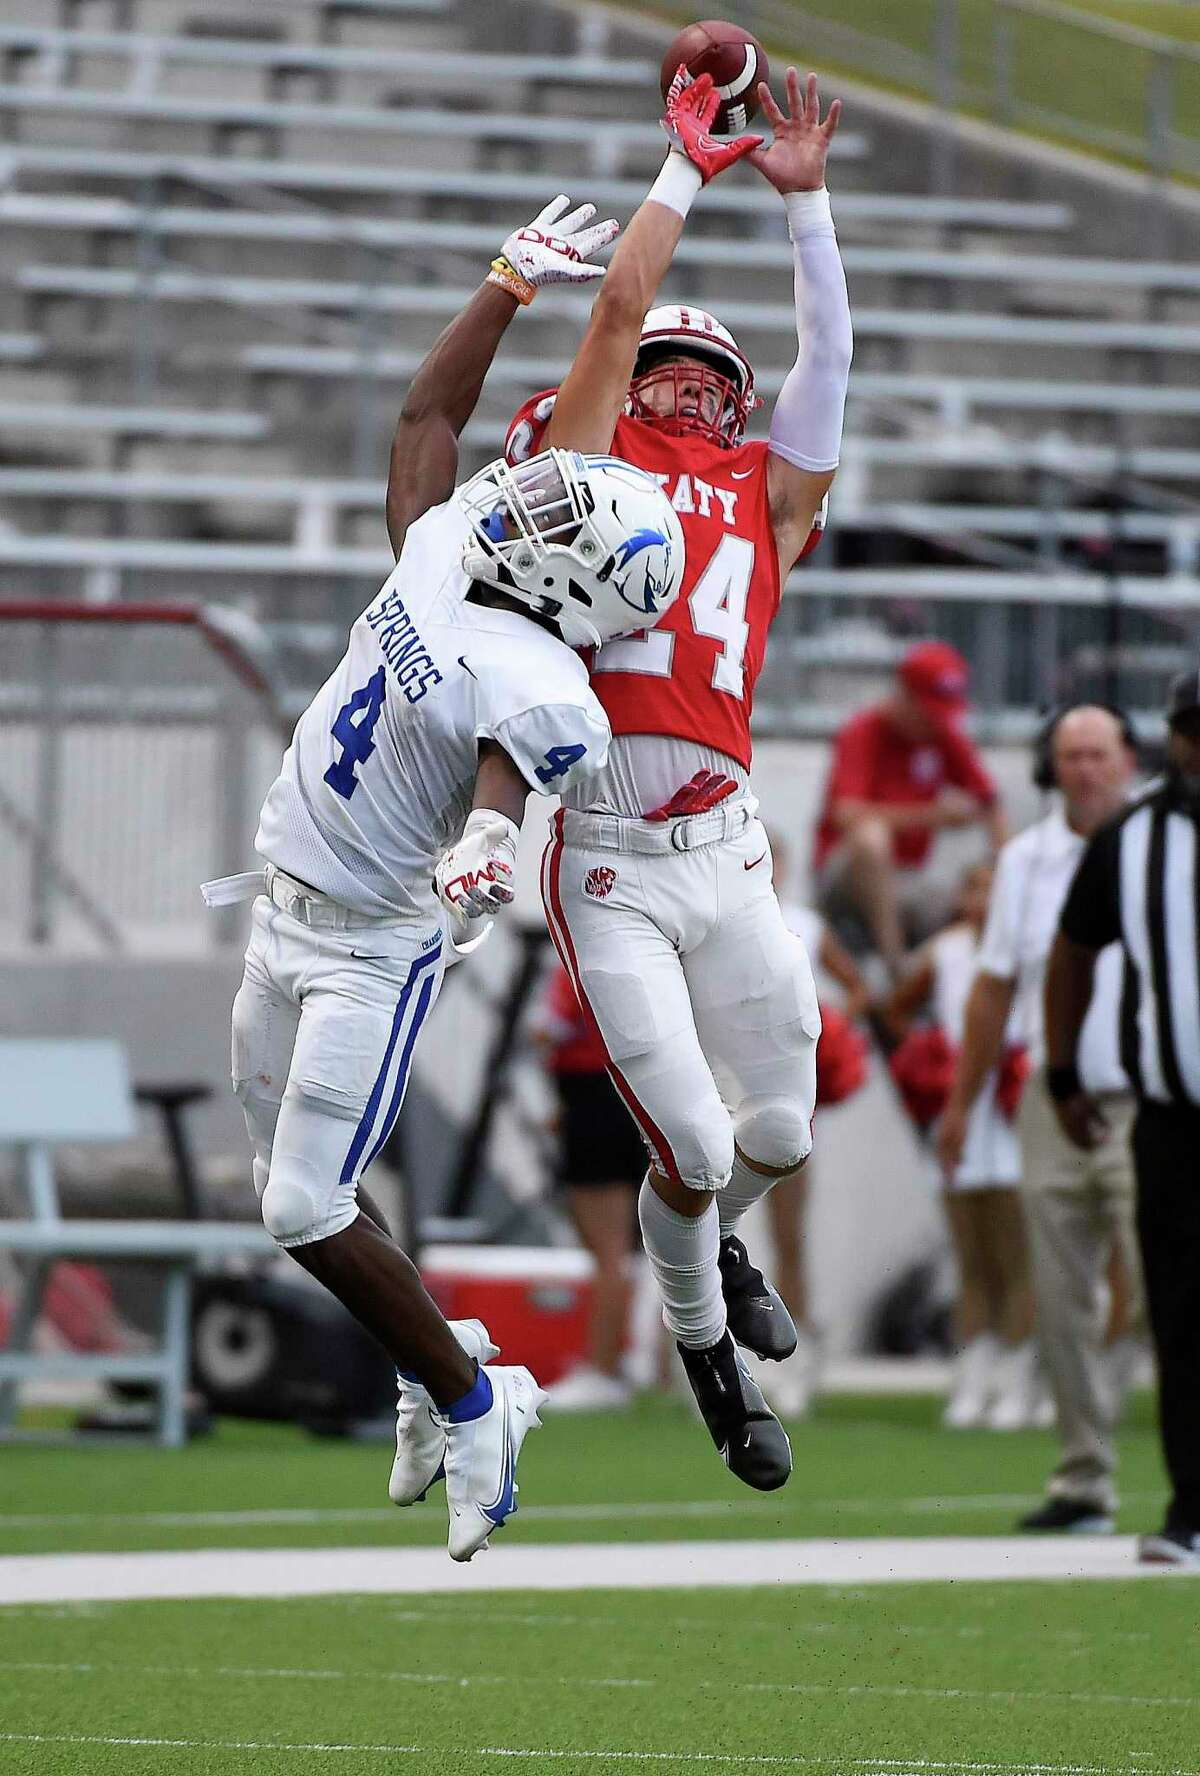 Clear Springs wide receiver Ky Woods (left) and Katy defensive back Hamilton McMartin leap for a pass during the first half of a high school football game last Friday in Katy.